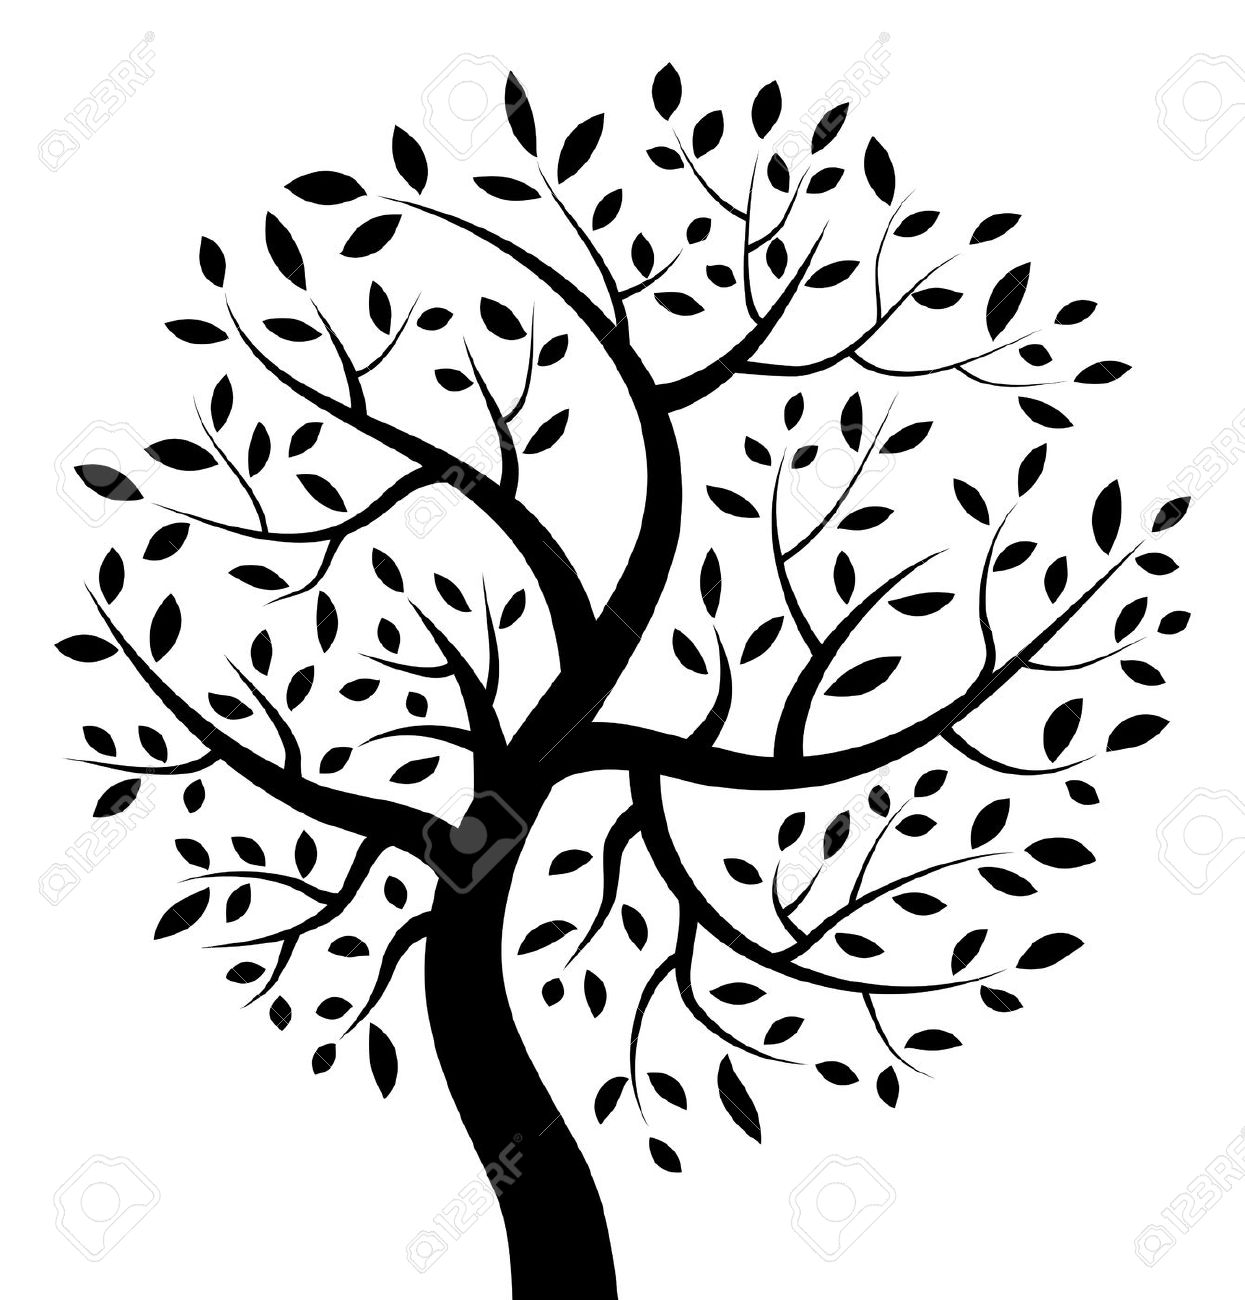 Black And White Tree Of Life .-Black And White Tree Of Life .-4